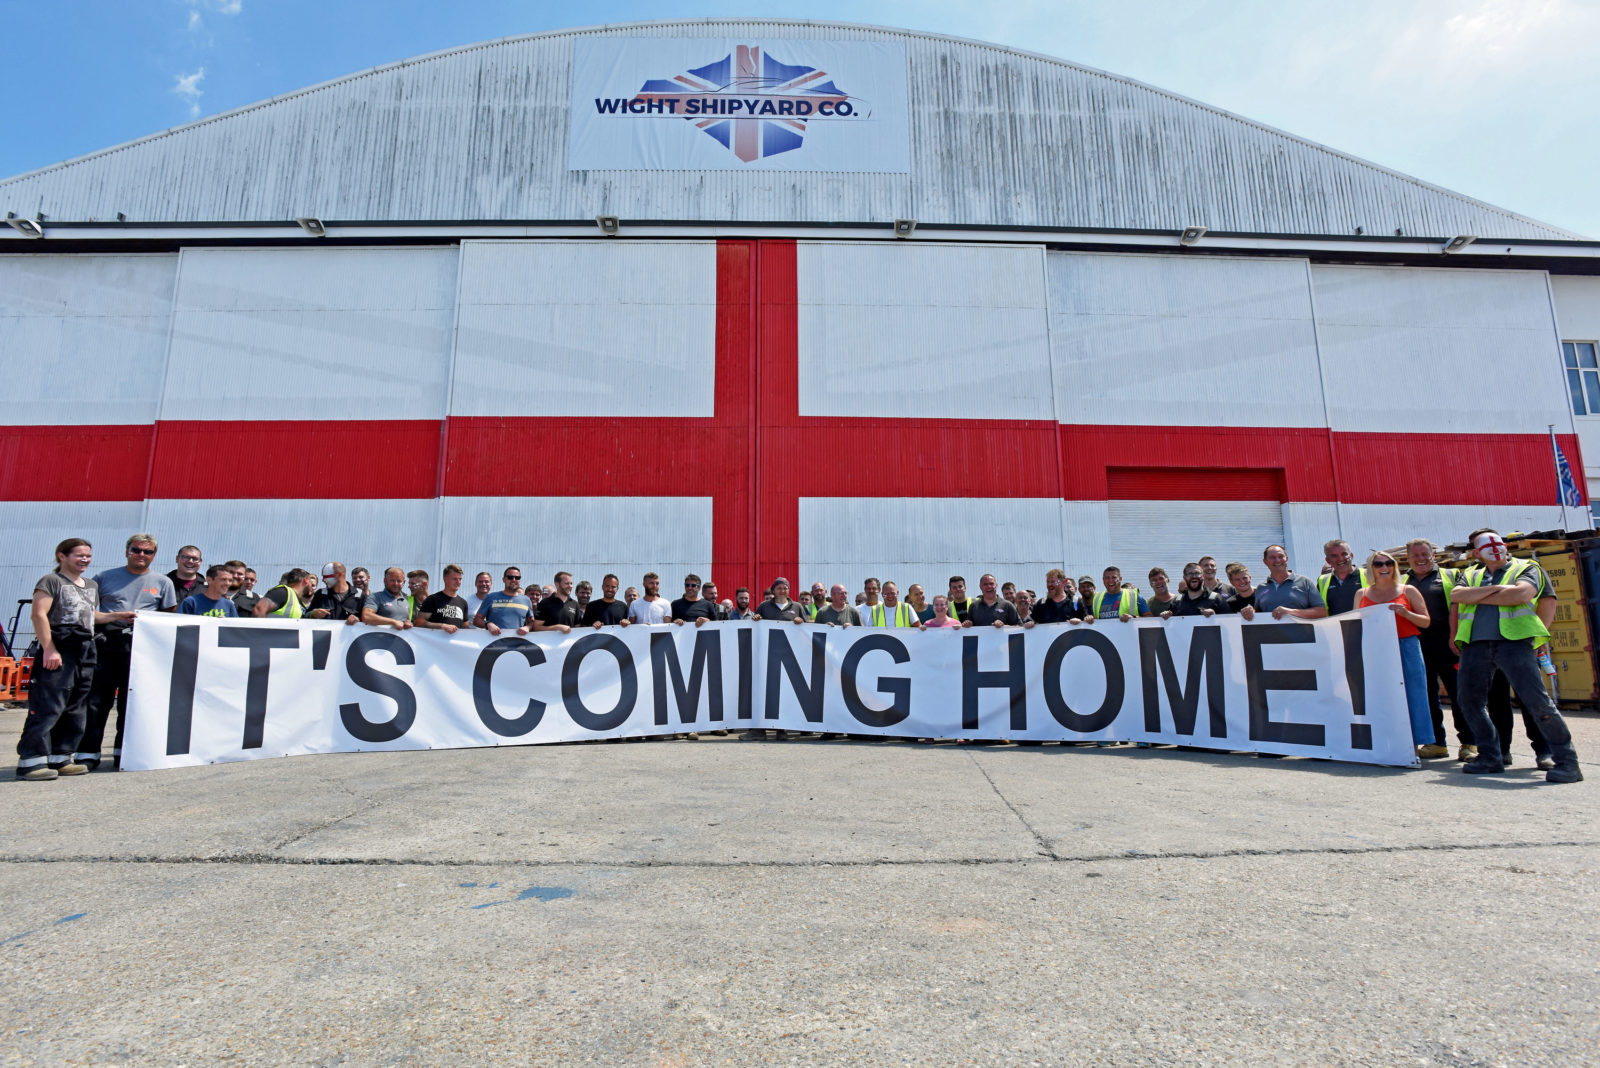 Football England Marine Sms Isle Of Wight Wight Shipyard Co Its Coming Home Wight